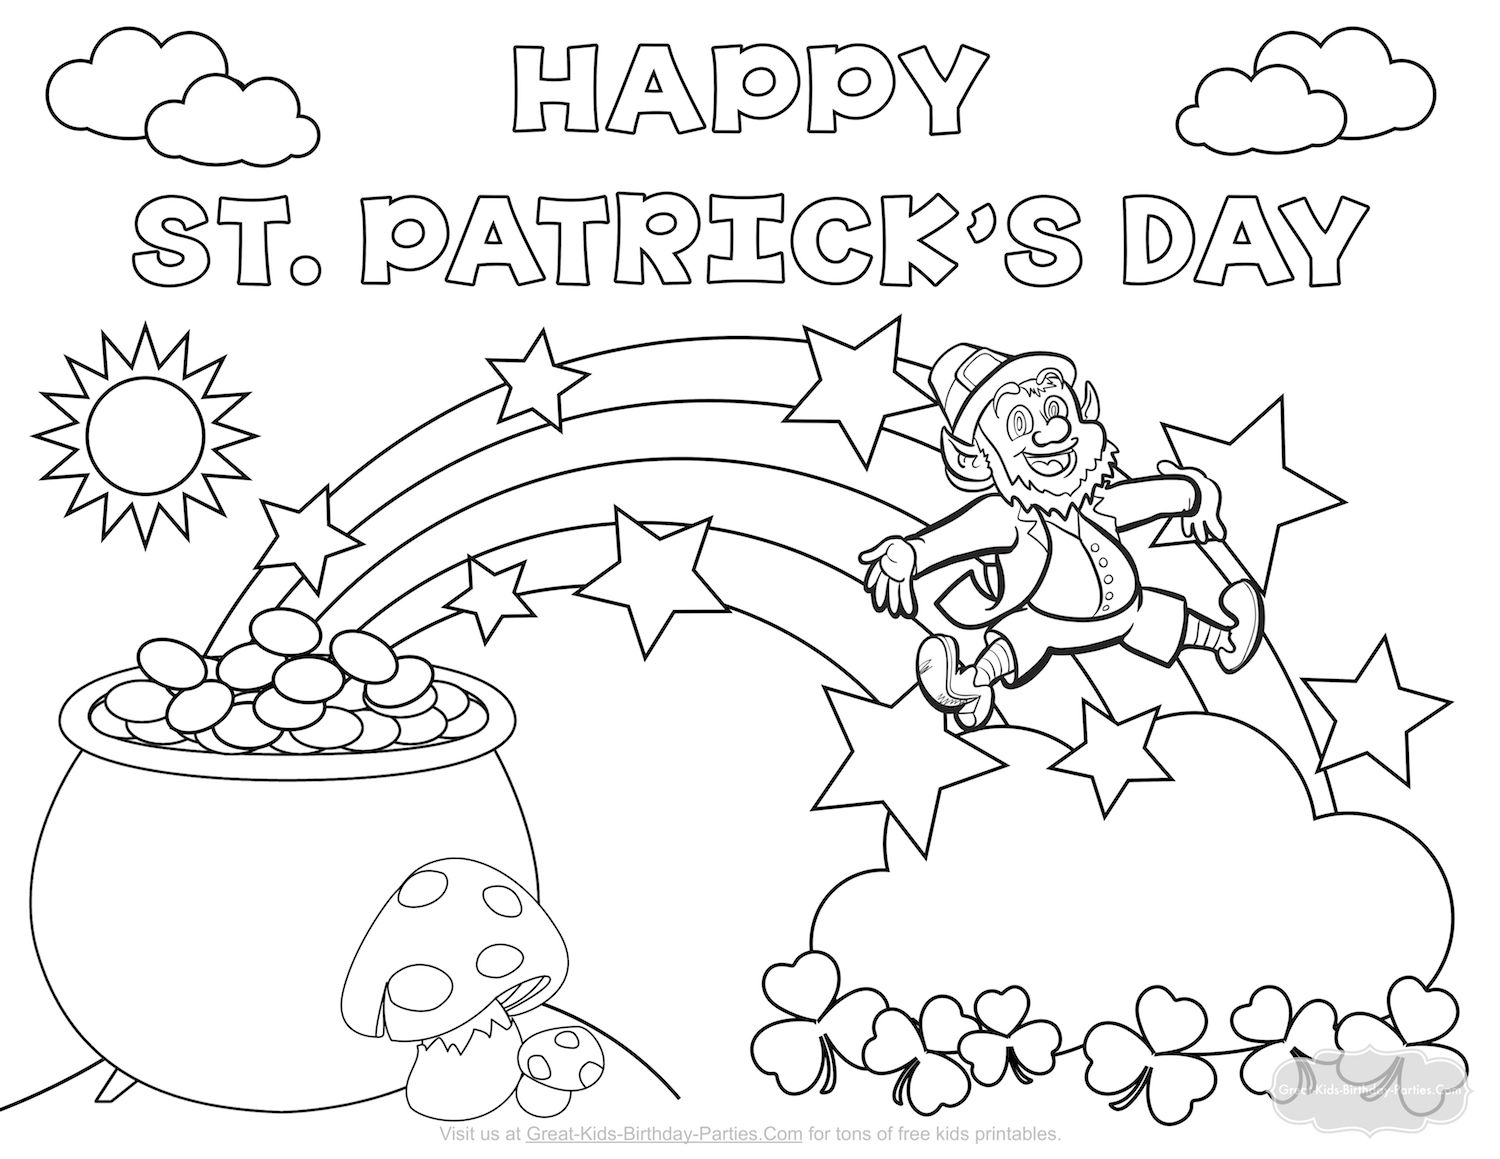 St Patrick S Day St Patrick Day Activities St Patricks Crafts St Patrick S Day Crafts